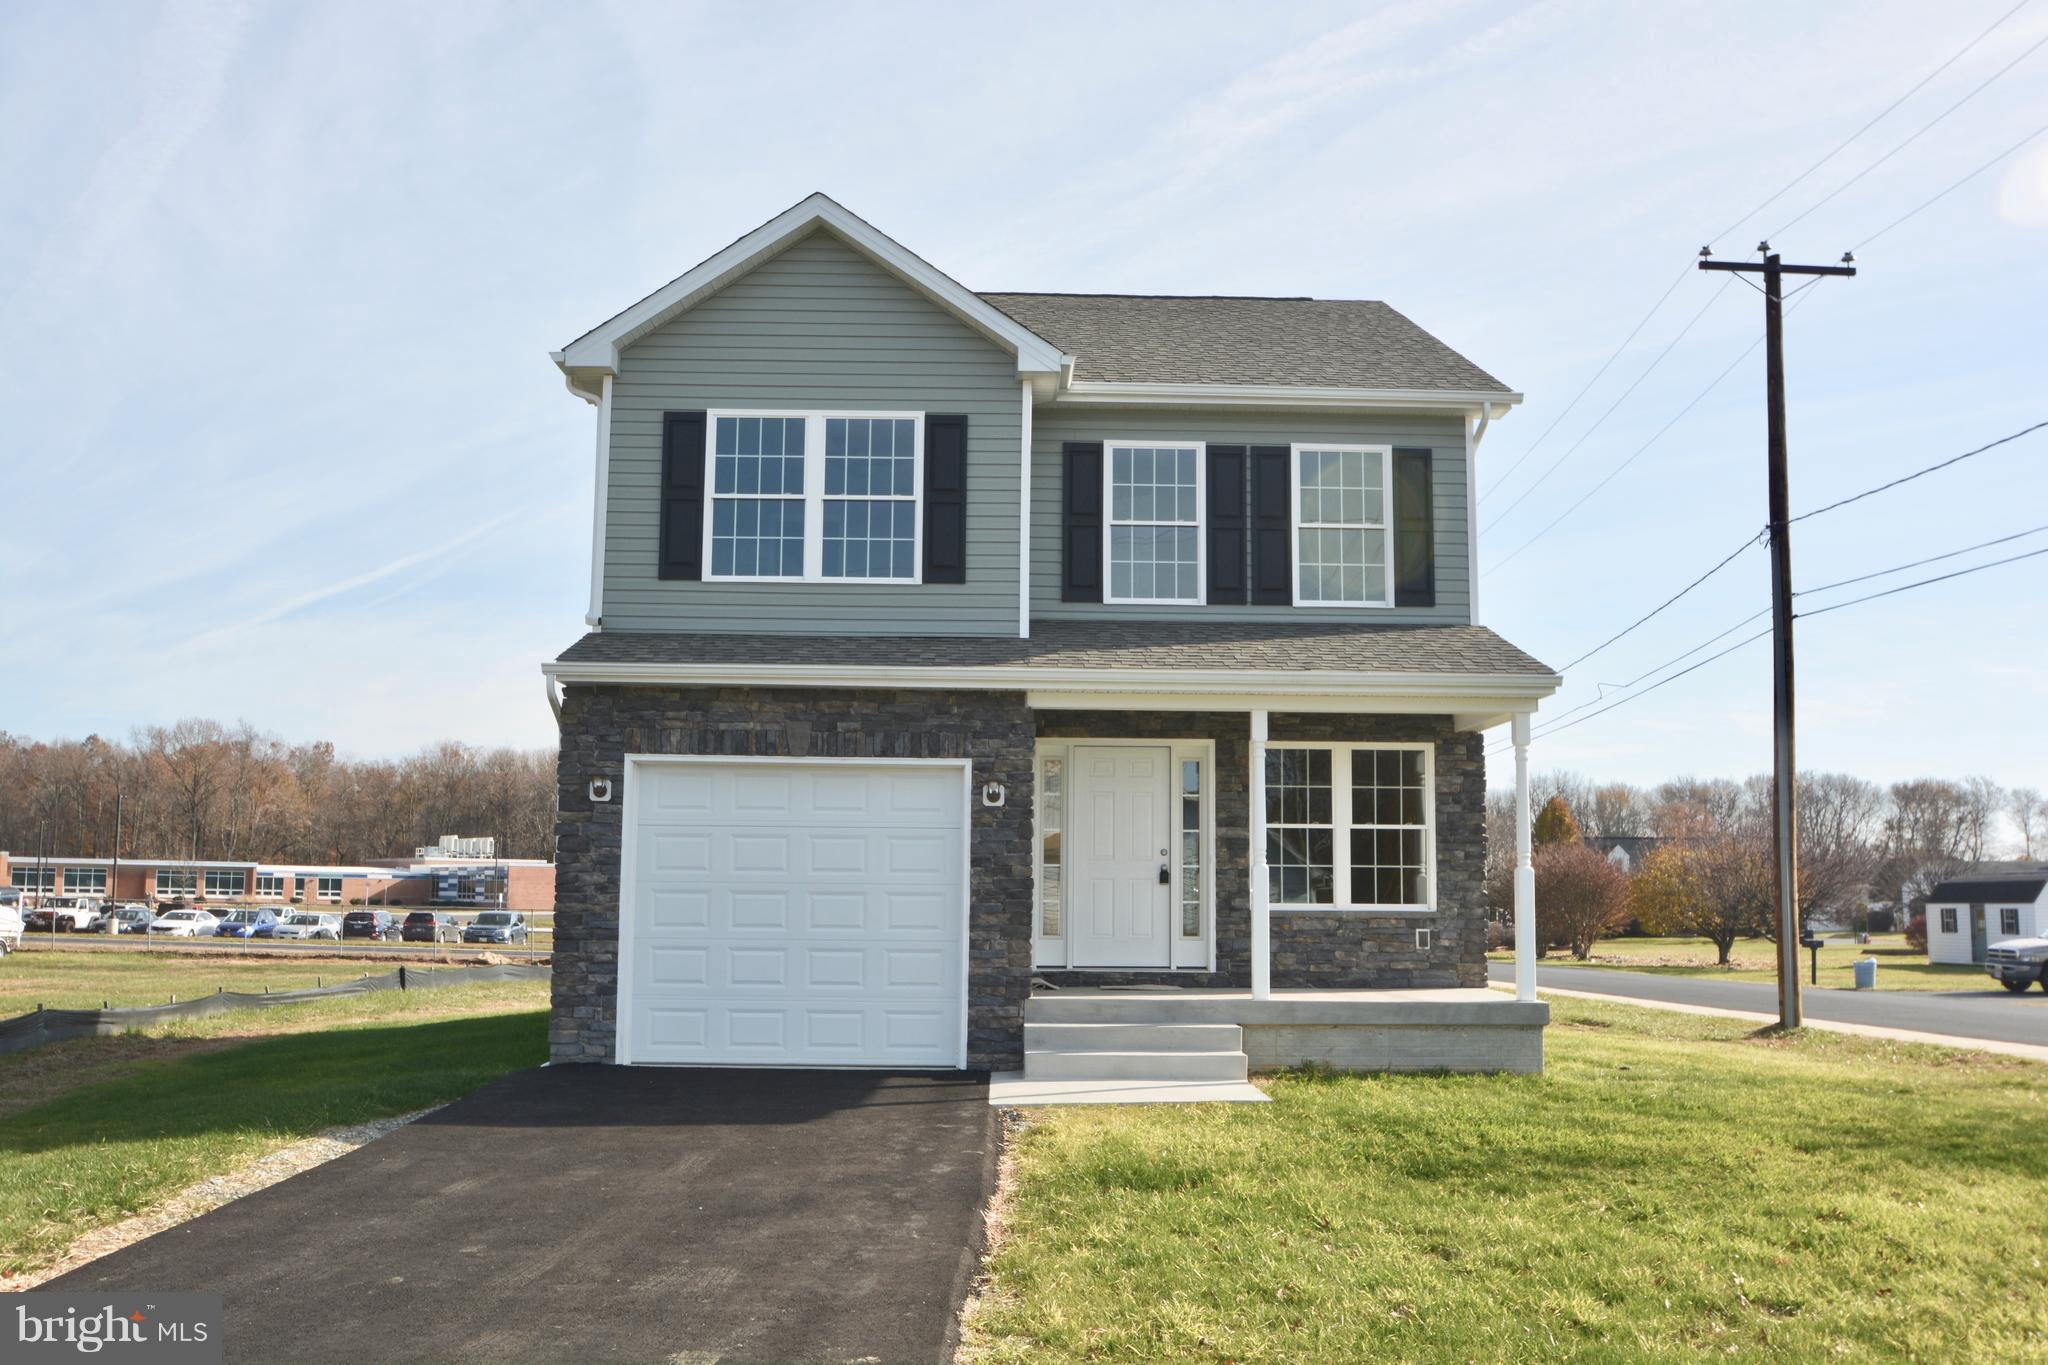 118 CECIL AVENUE, PERRYVILLE, MD 21903